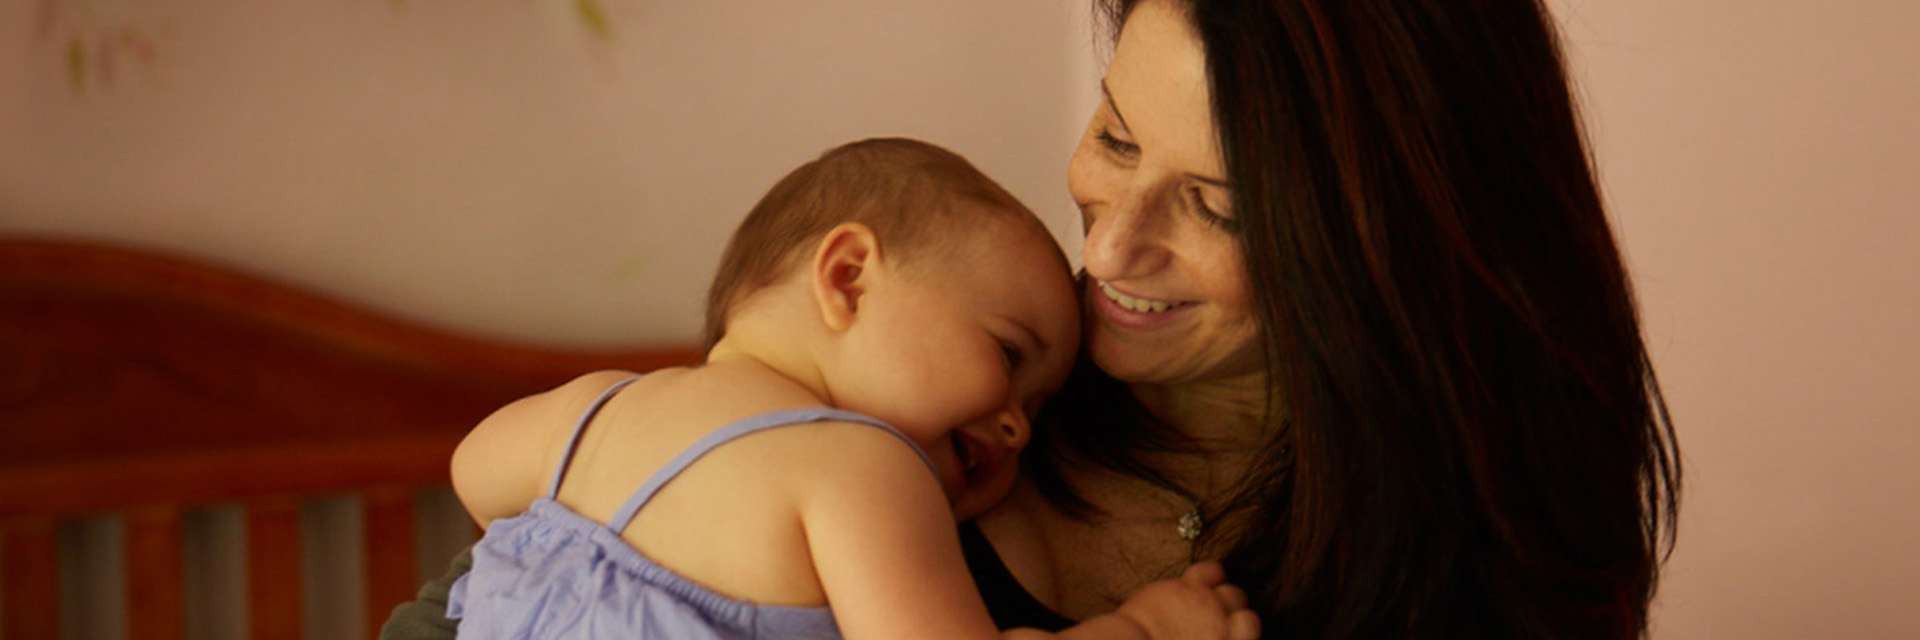 Suzanne had cervical cancer. Now she has a daughter.